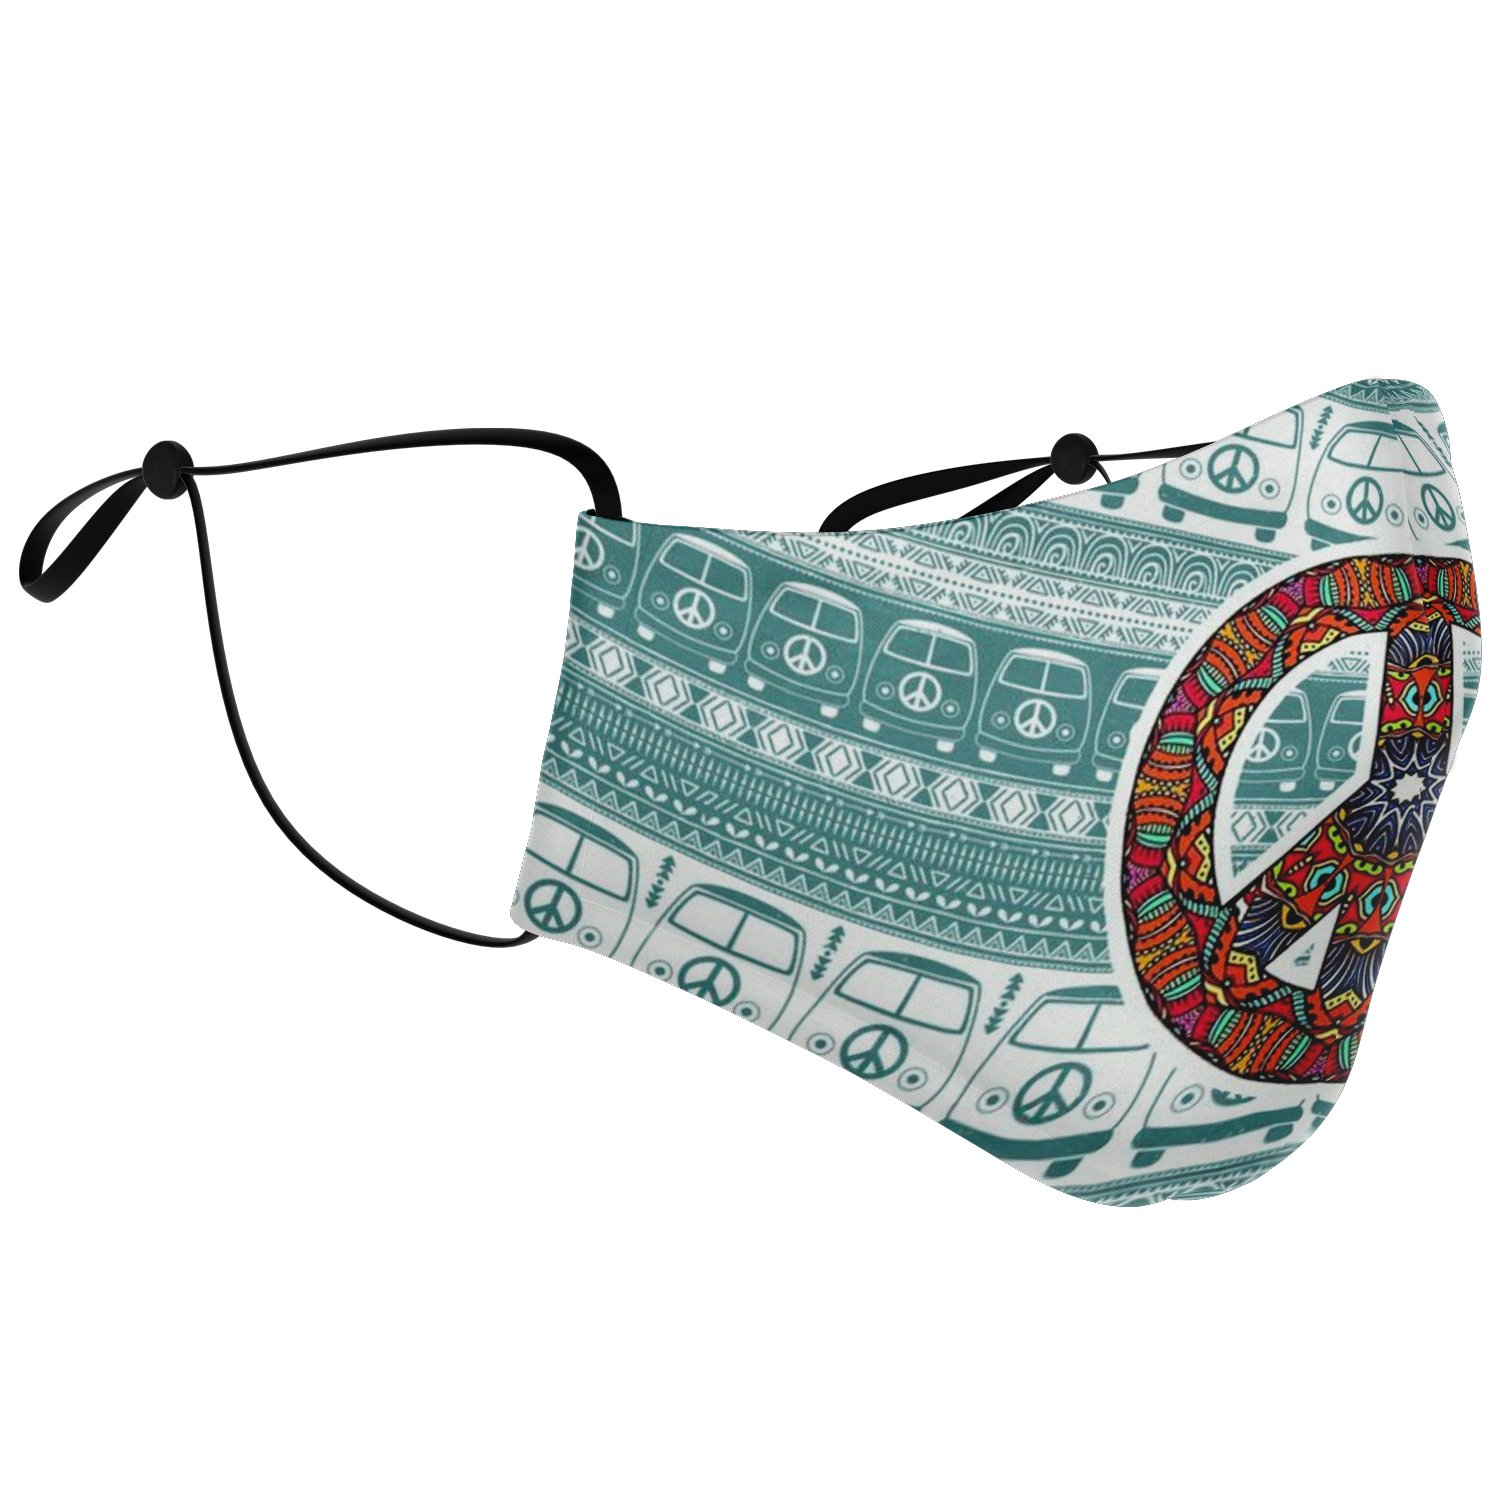 Hippie Van Volkswagen Peace And Love Face Mask 2